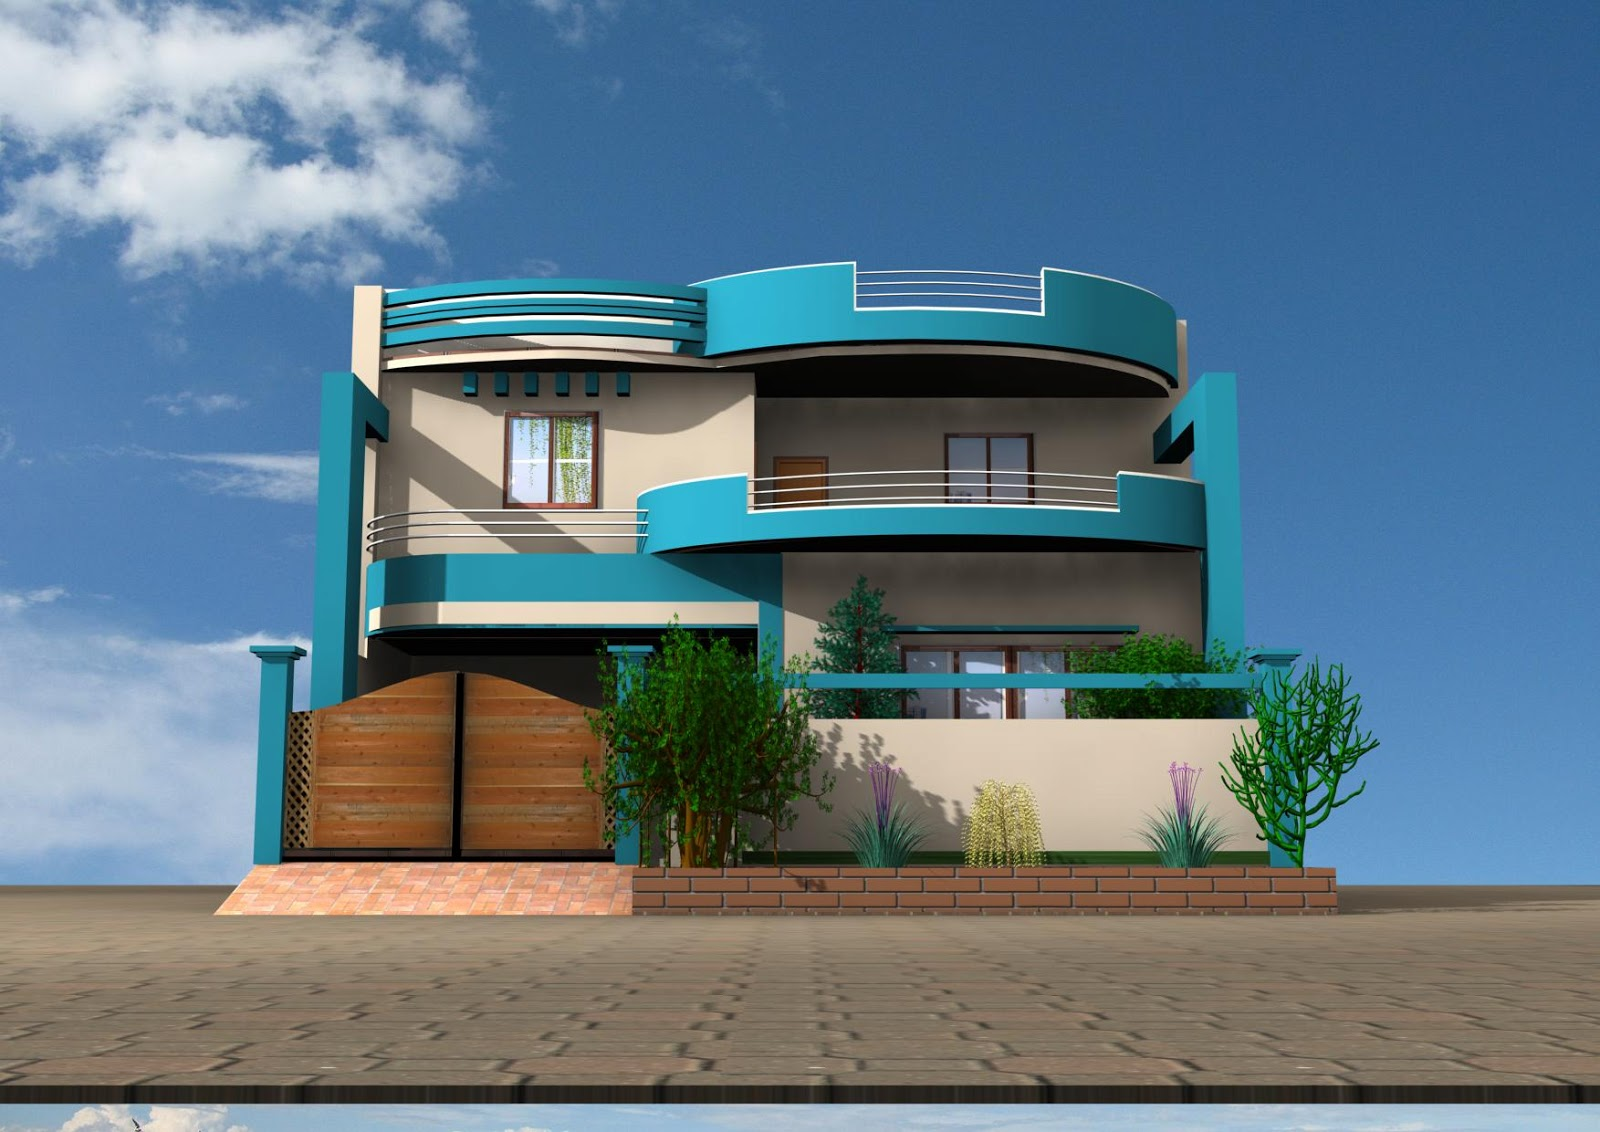 New home designs latest modern homes latest exterior for Home designs exterior